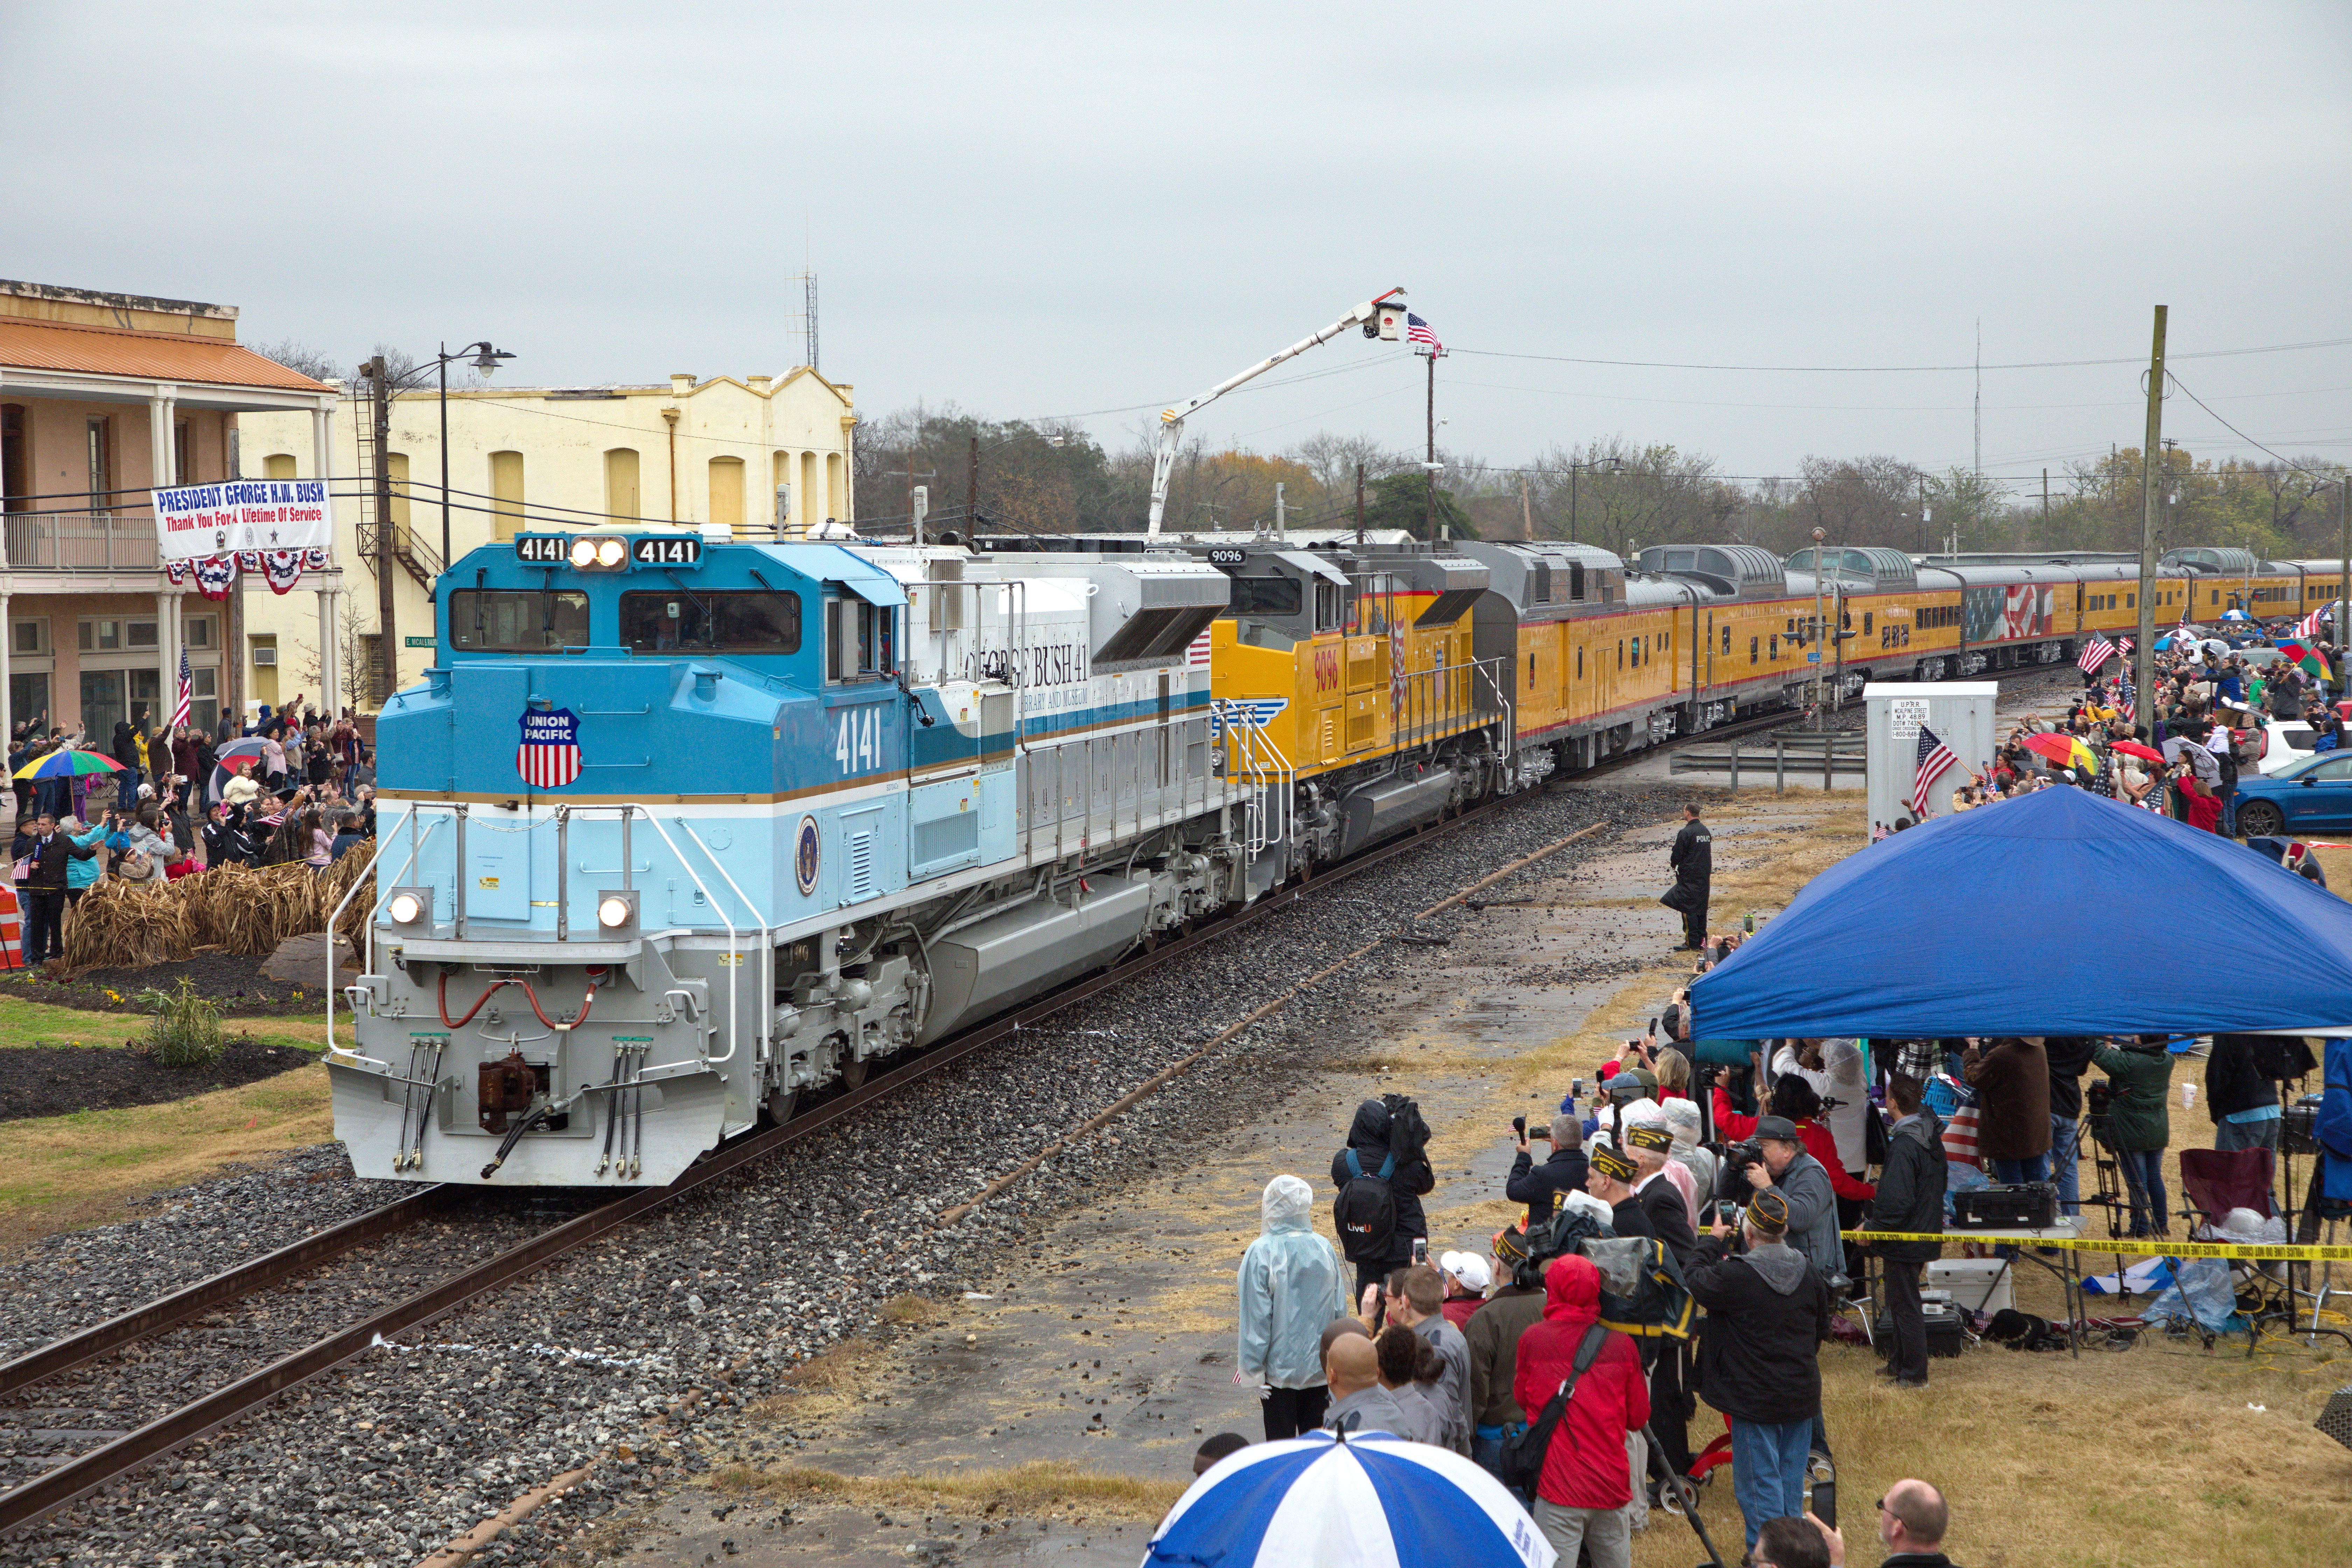 Up George H W Bush Funeral Train Image Gallery